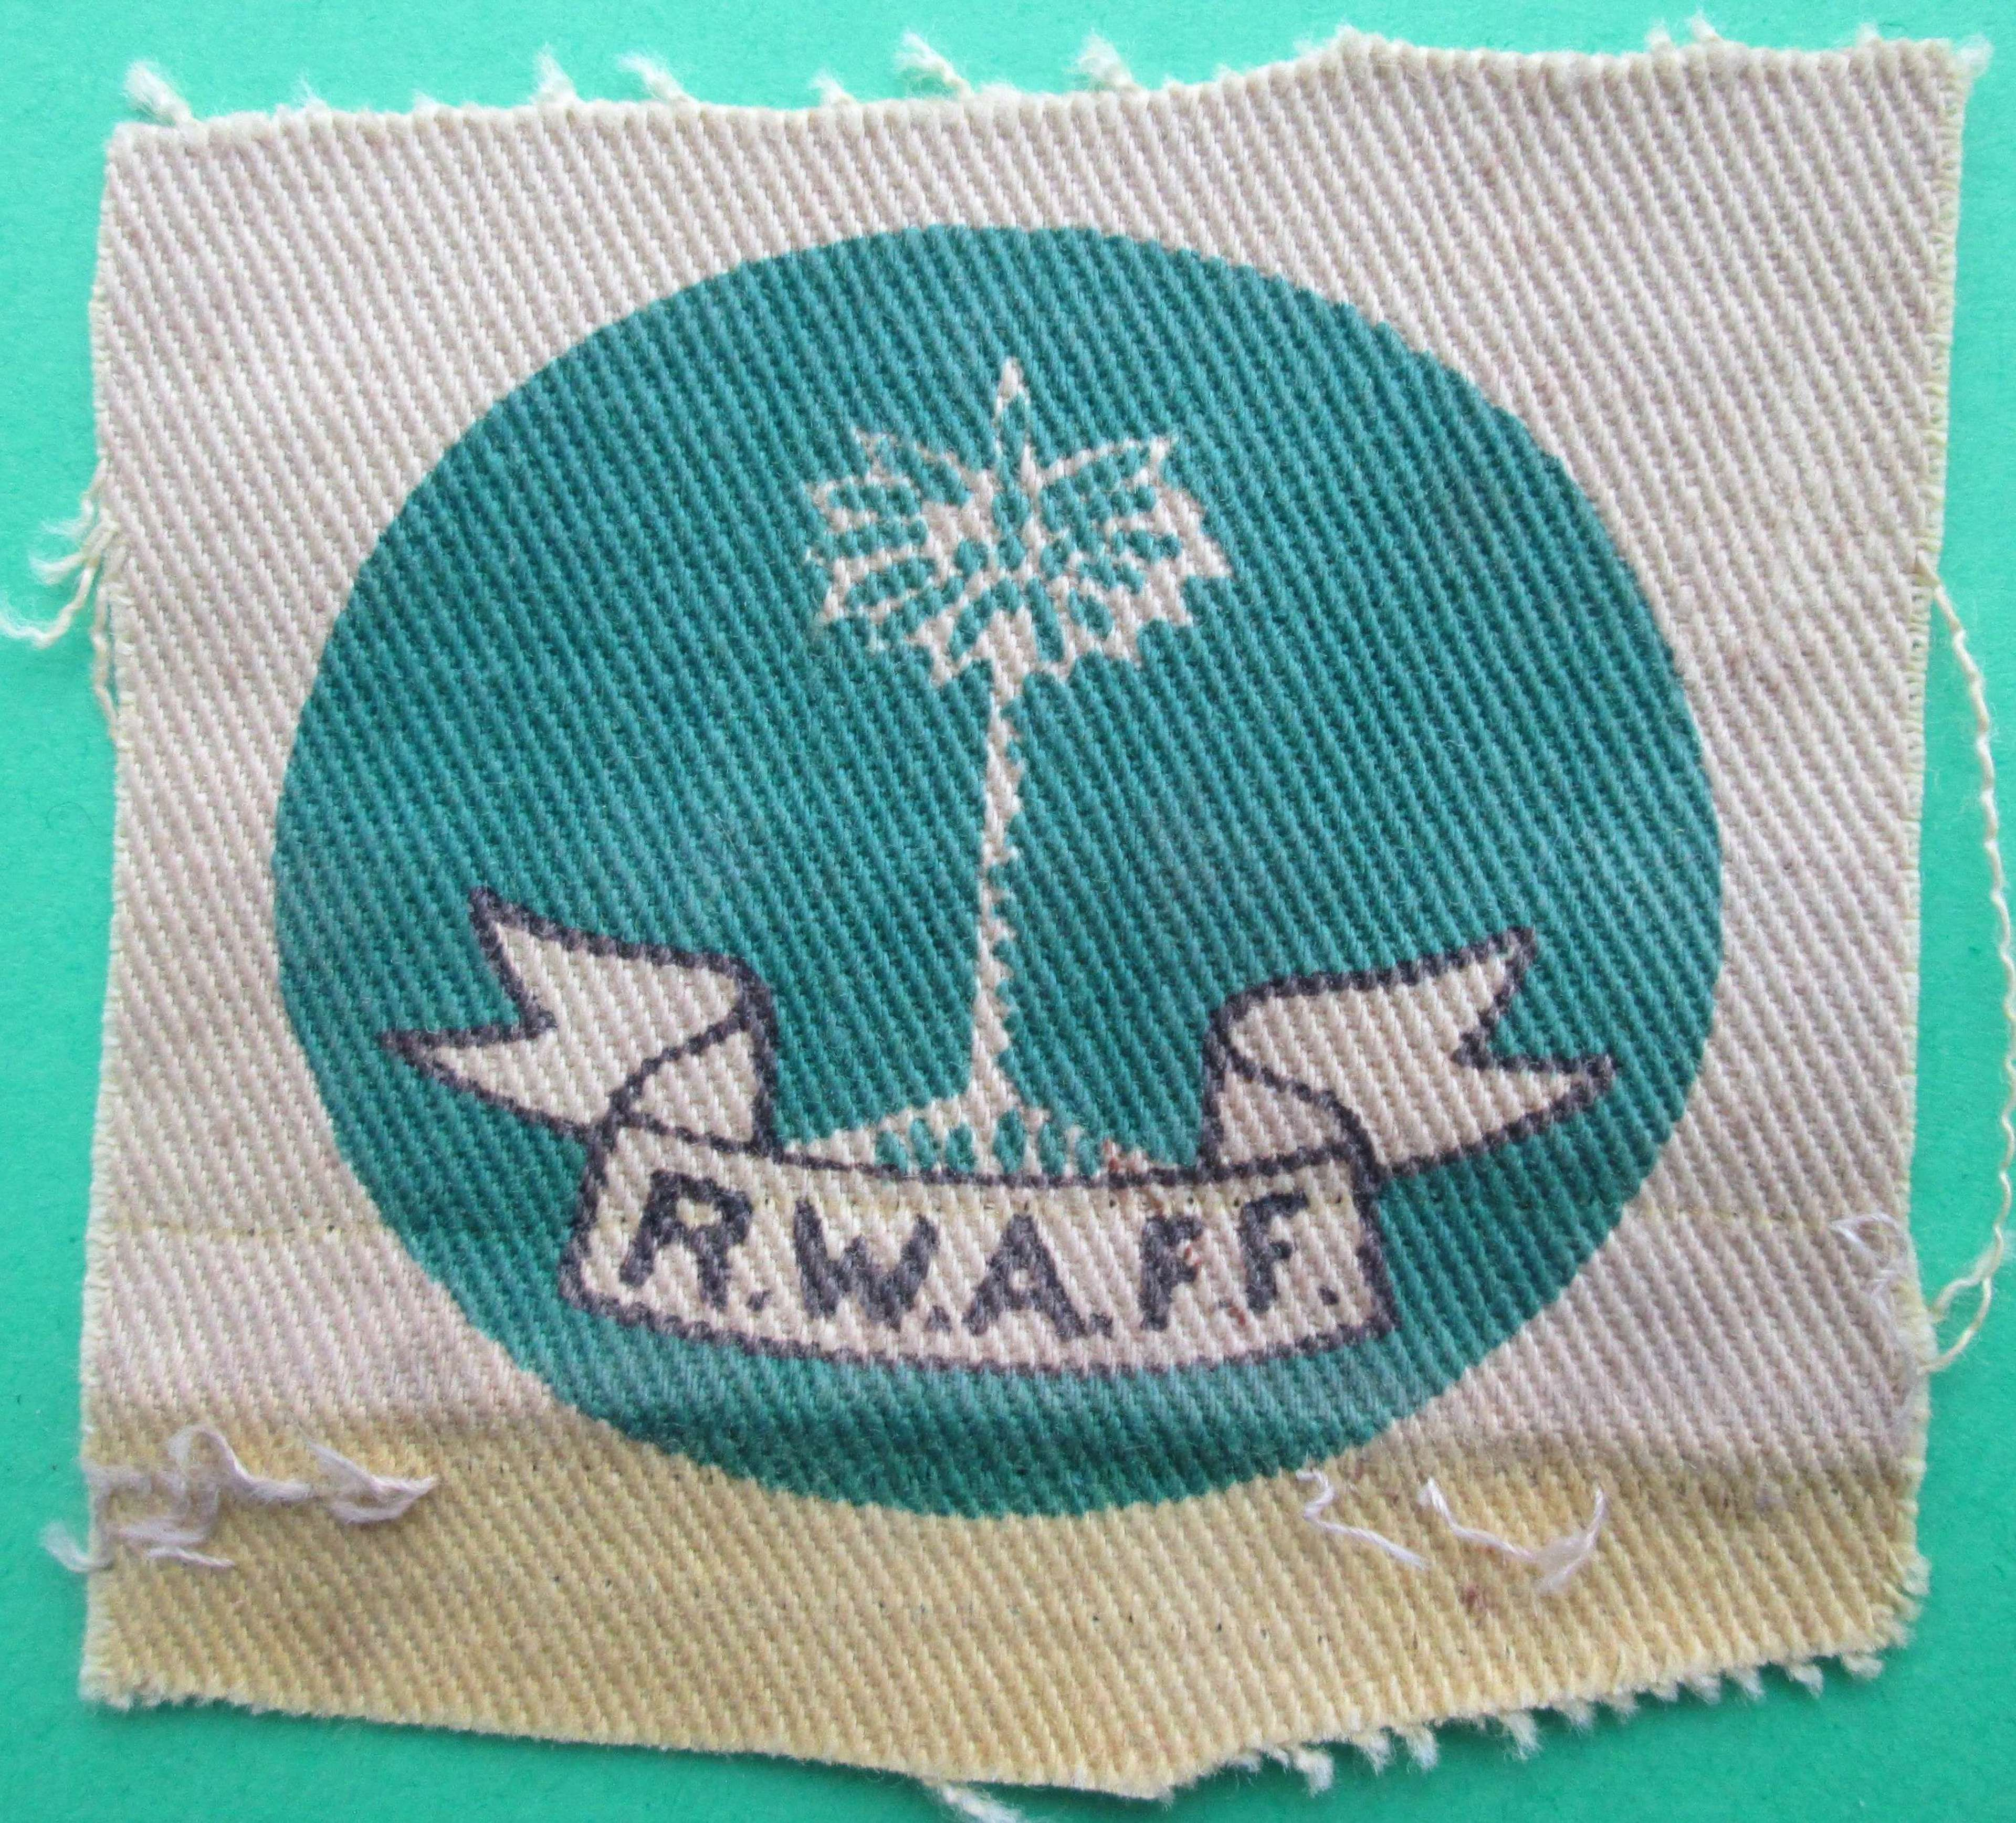 A WWII PERIOD ROYAL WEST AFRICAN FRONTIER FORMATION SIGN